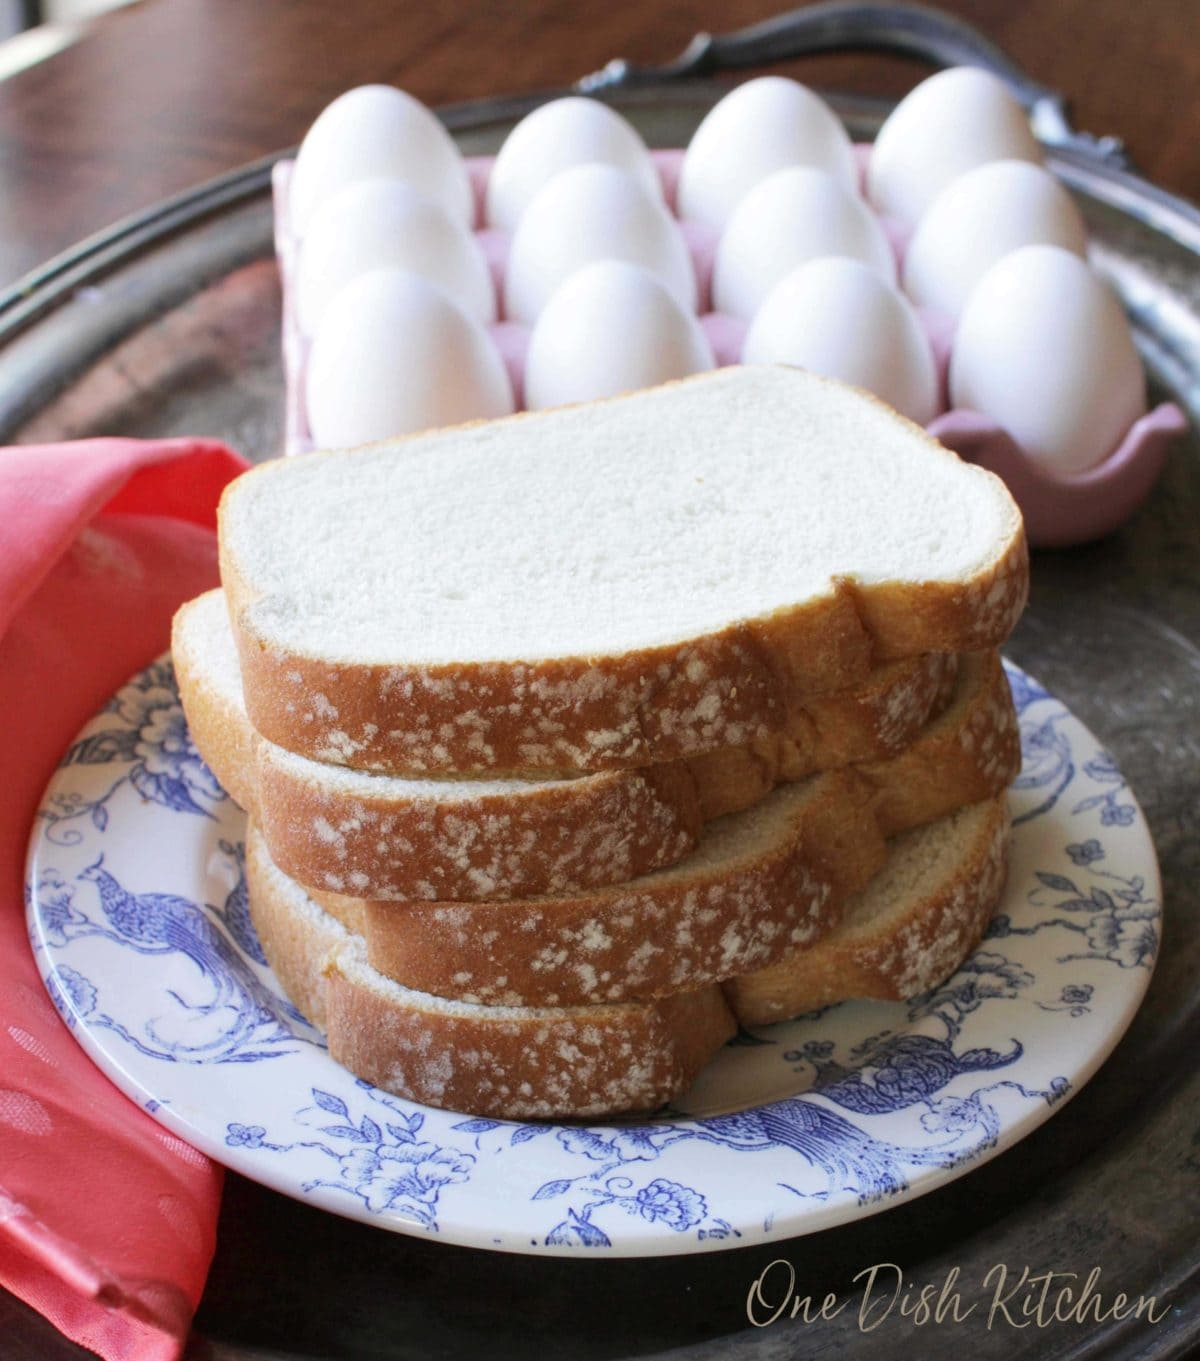 Four slices of white bread on a plate next to a tray of a dozen eggs and a red cloth napkin all on a metal tray